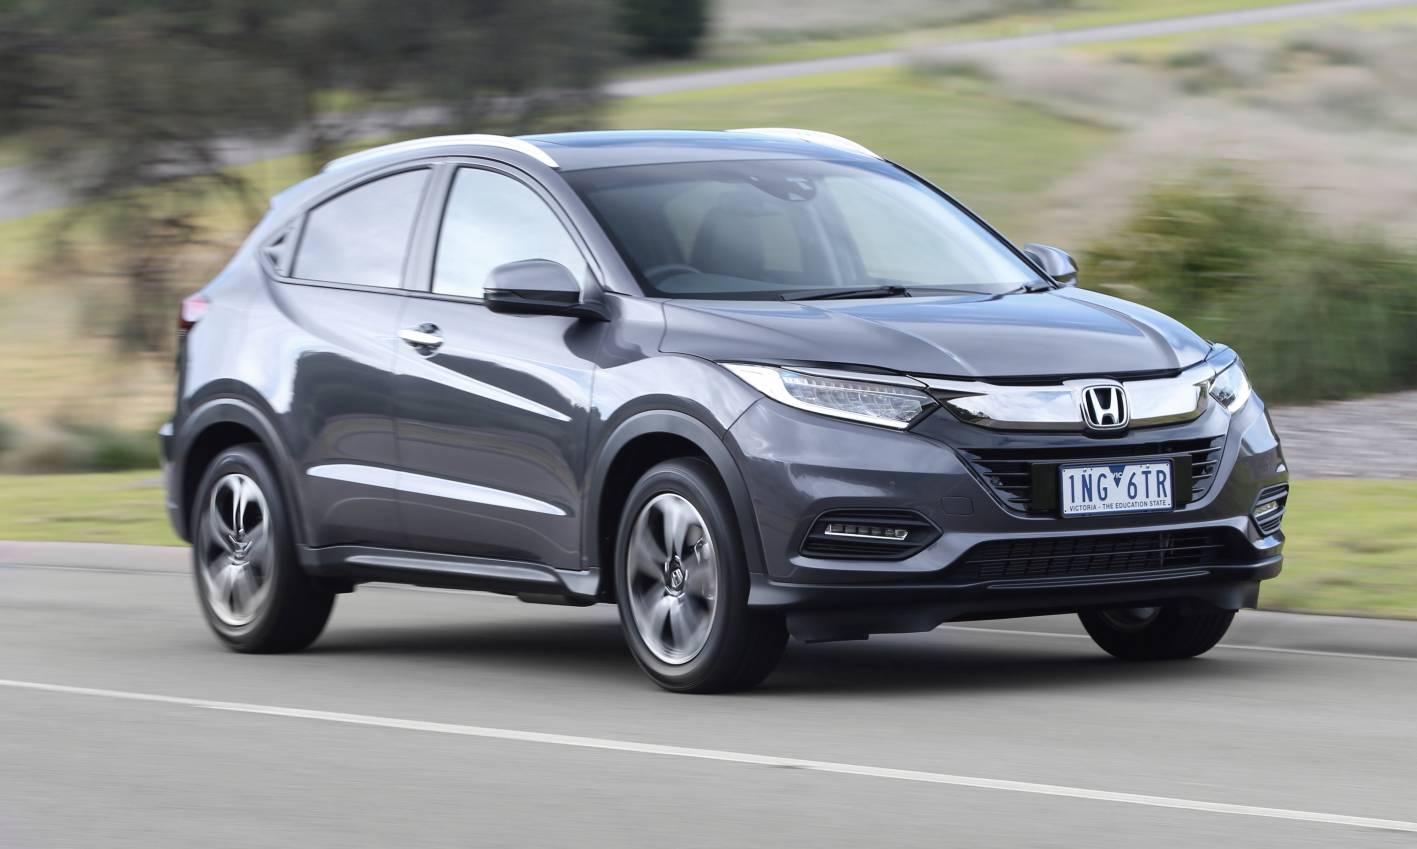 2018 honda hr v price specs and release date practical for Honda hrv 2018 release date